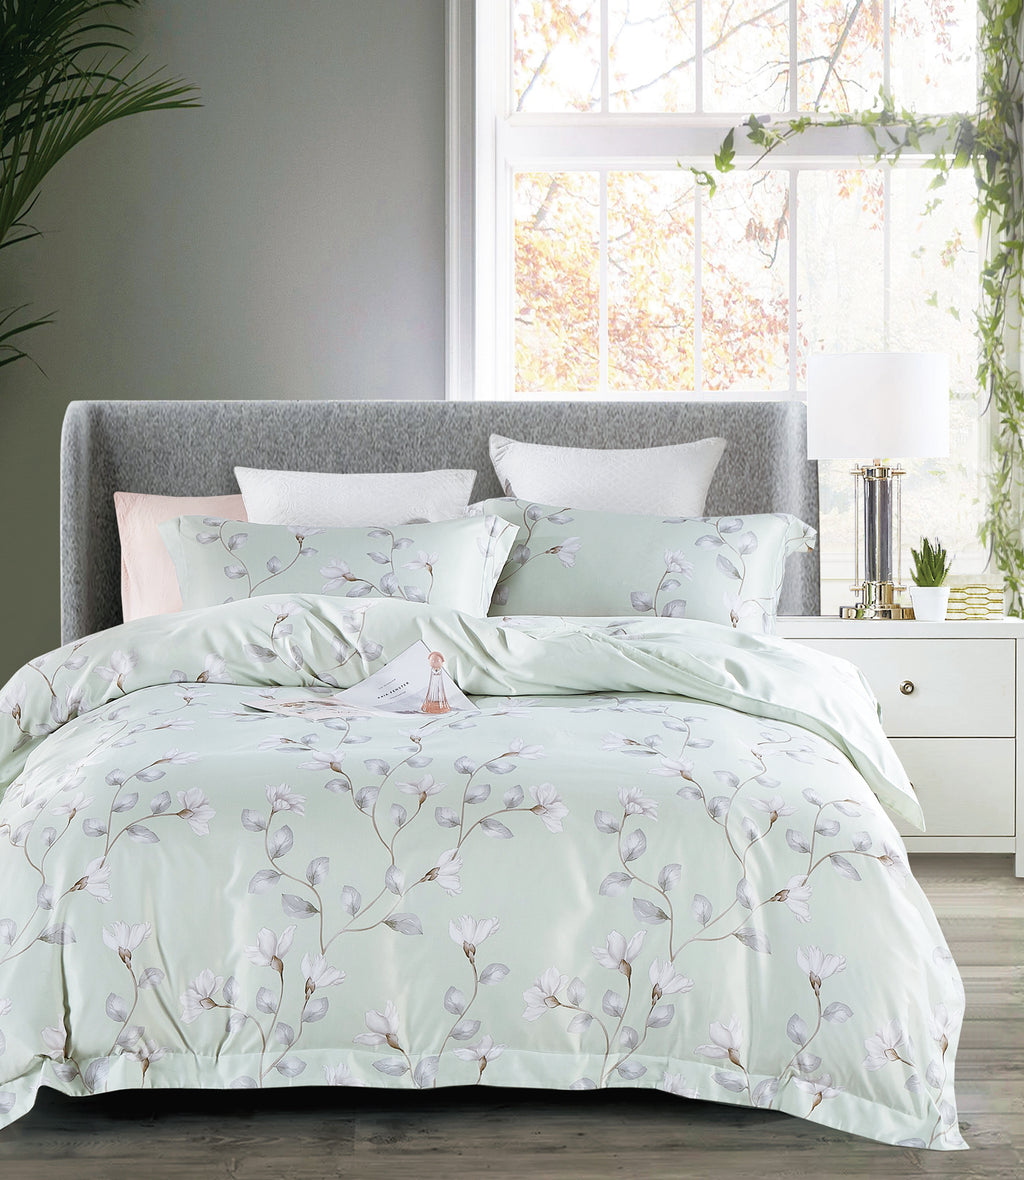 Epitex 1000TC HS1208-03 Hybrid Botanic Silk Printed Fitted Sheet Set & Bedset - Epitex